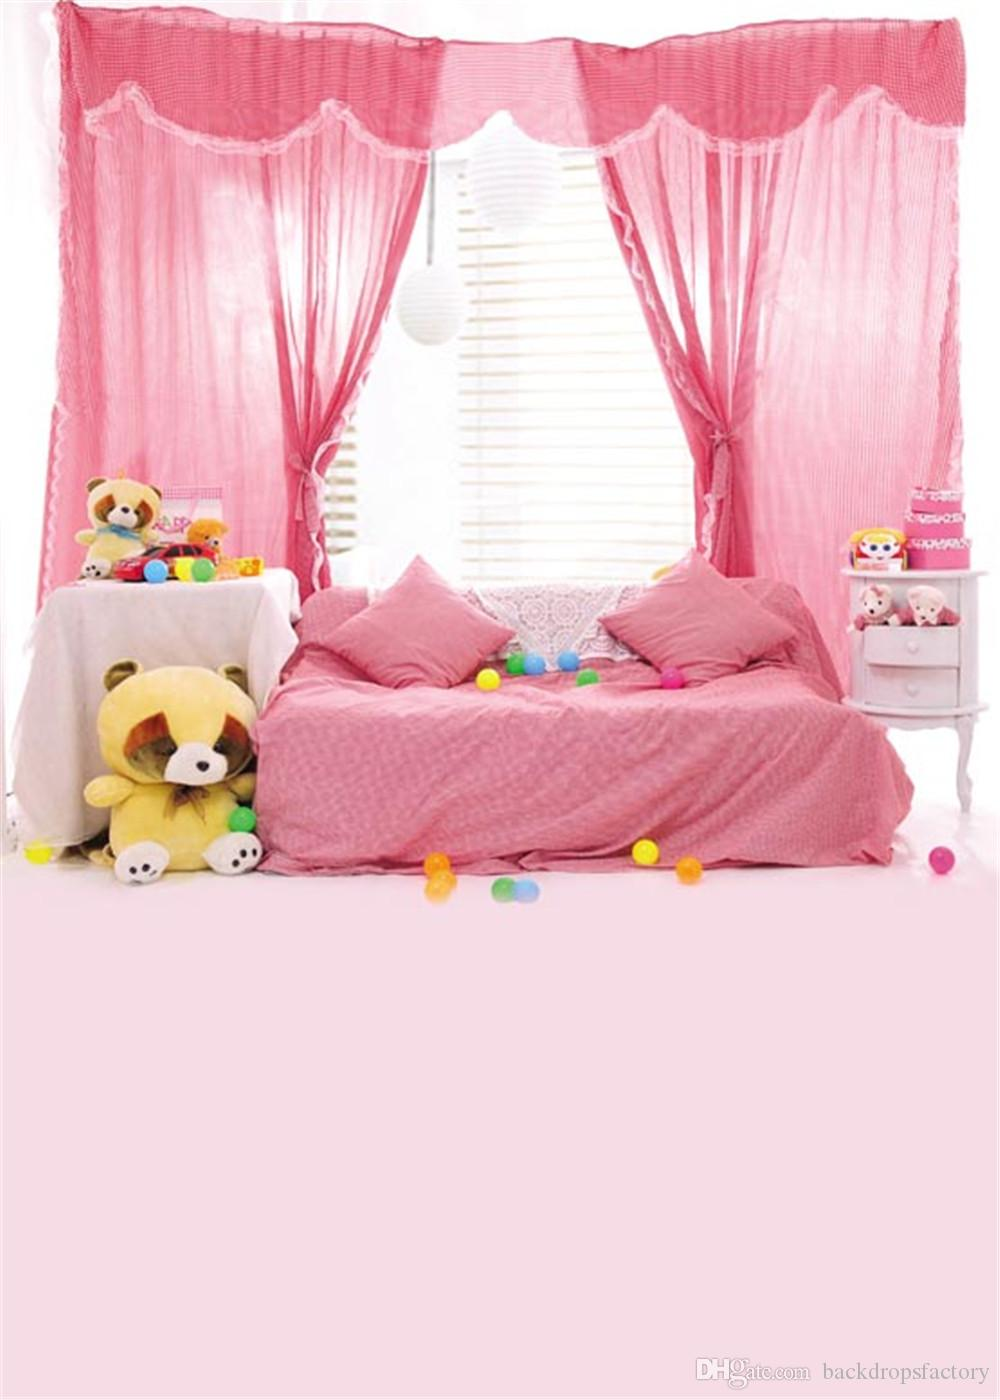 2019 Indoor Room Pink Curtains Bed Photo Backdrop Bright